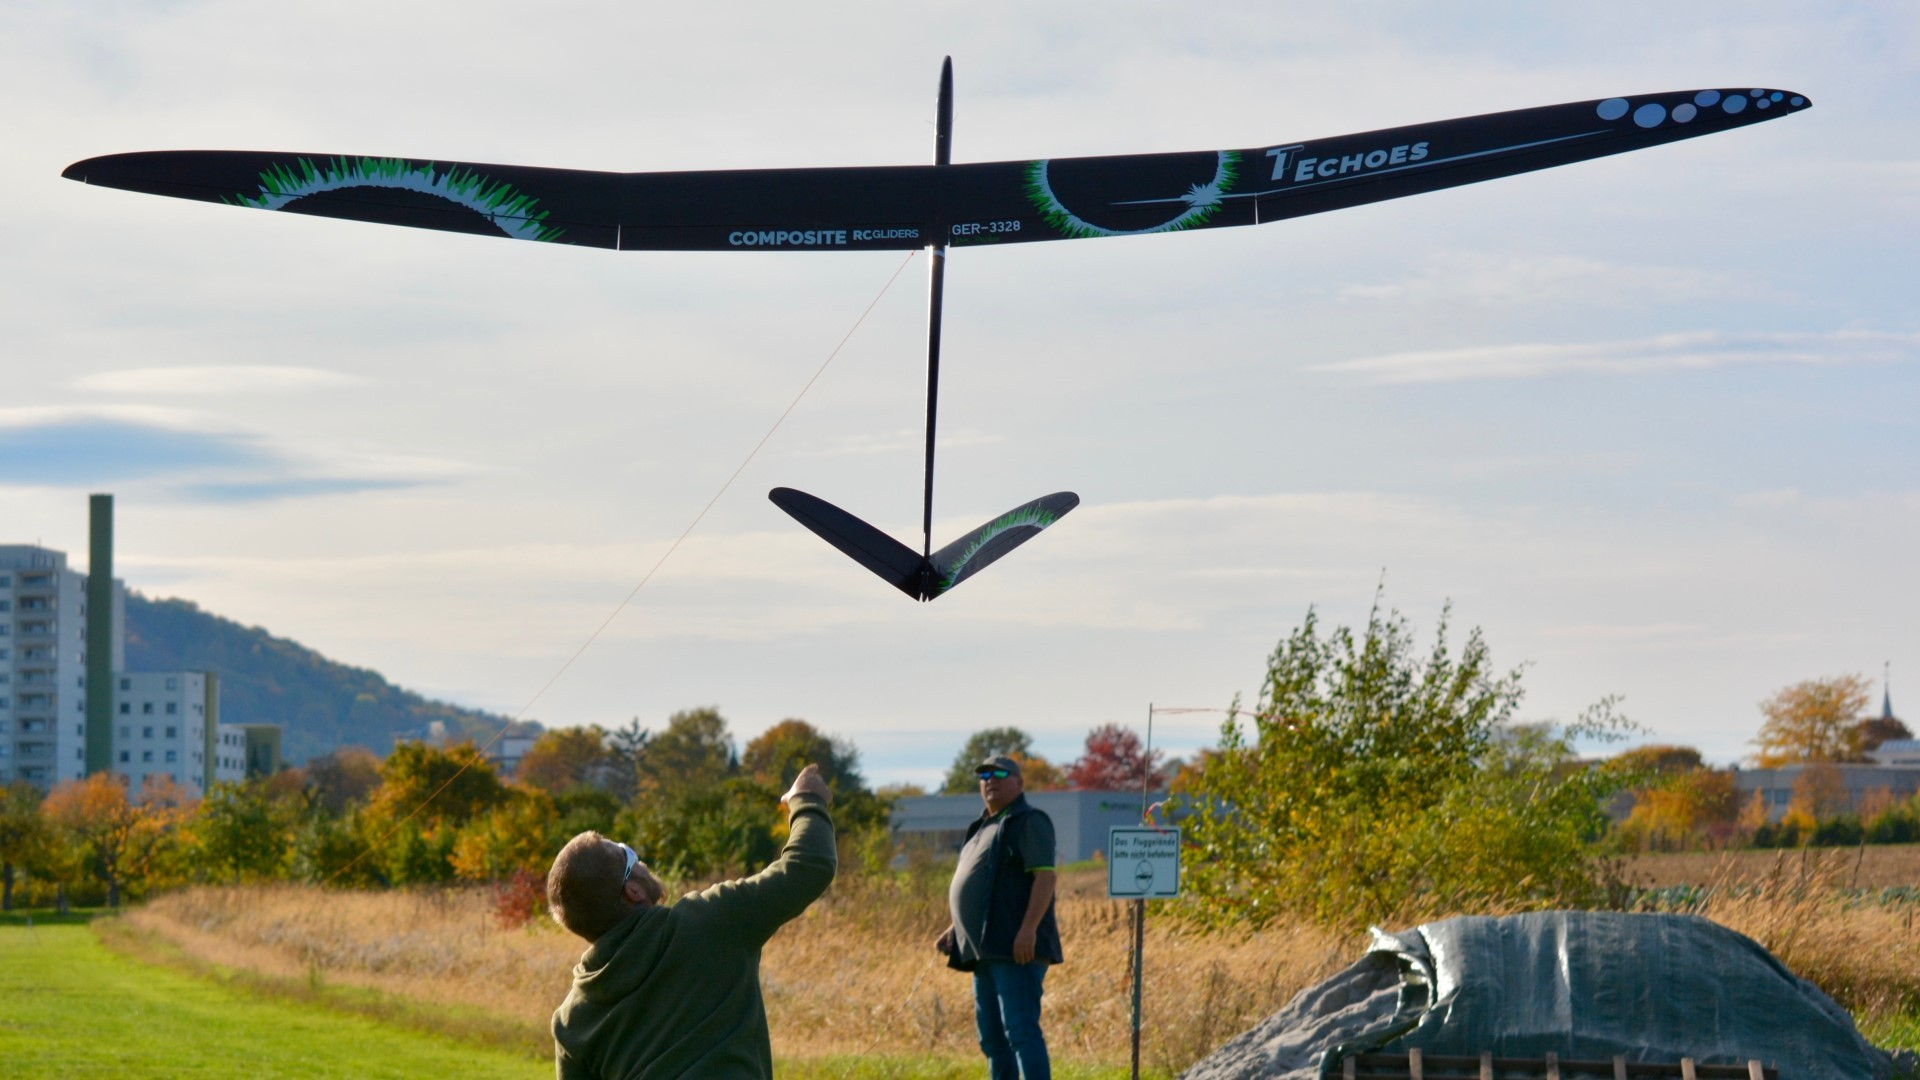 TT Echoes (Composite RC Gliders)